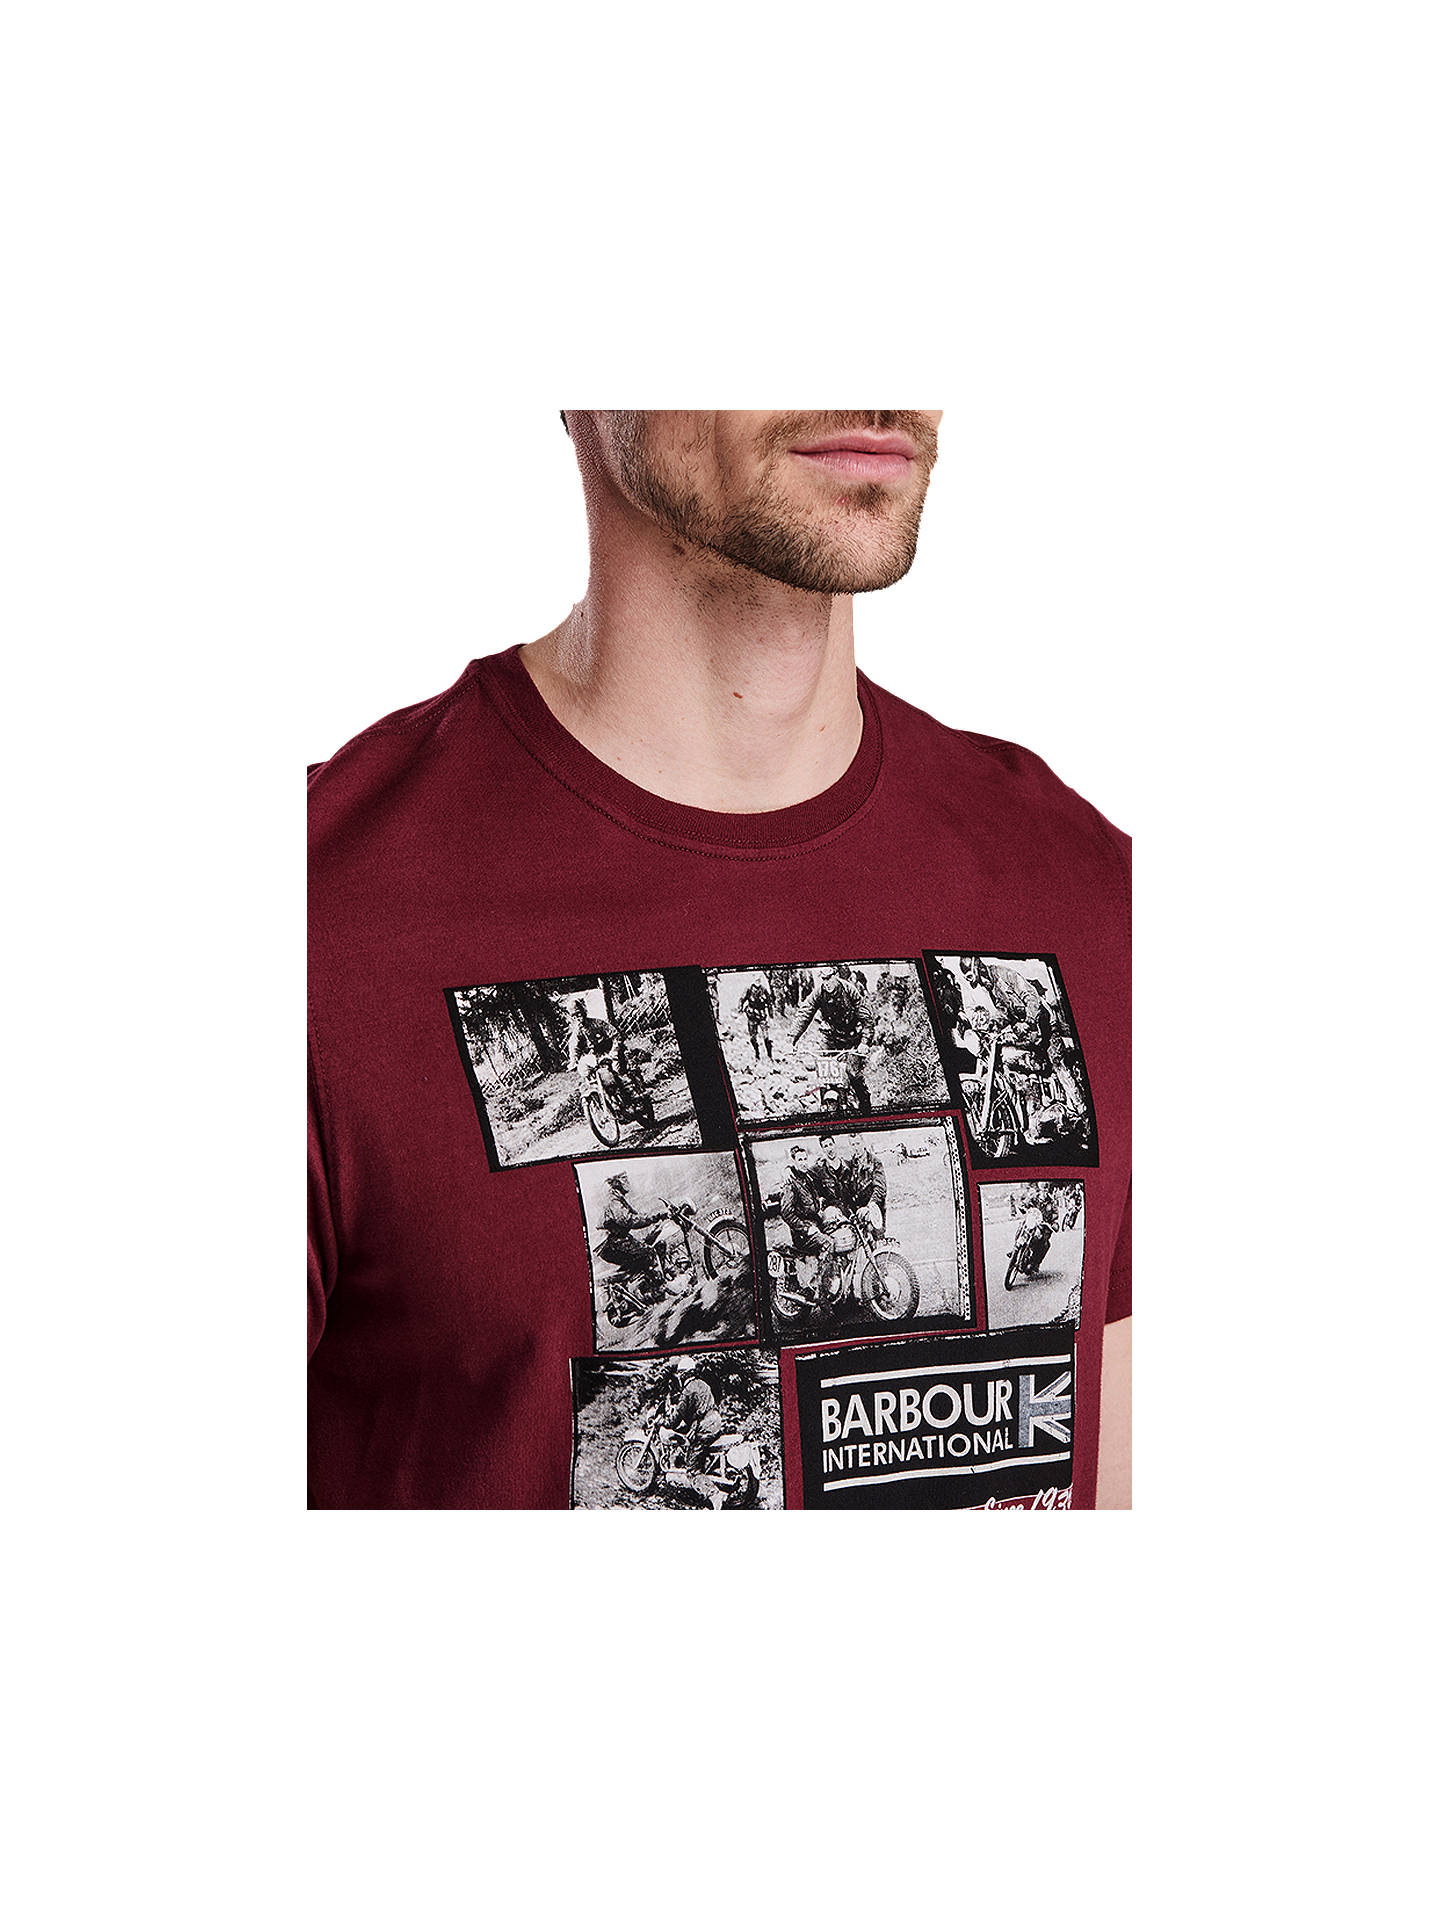 Buy Barbour International Short Sleeve Graphic T-Shirt, Port, S Online at johnlewis.com